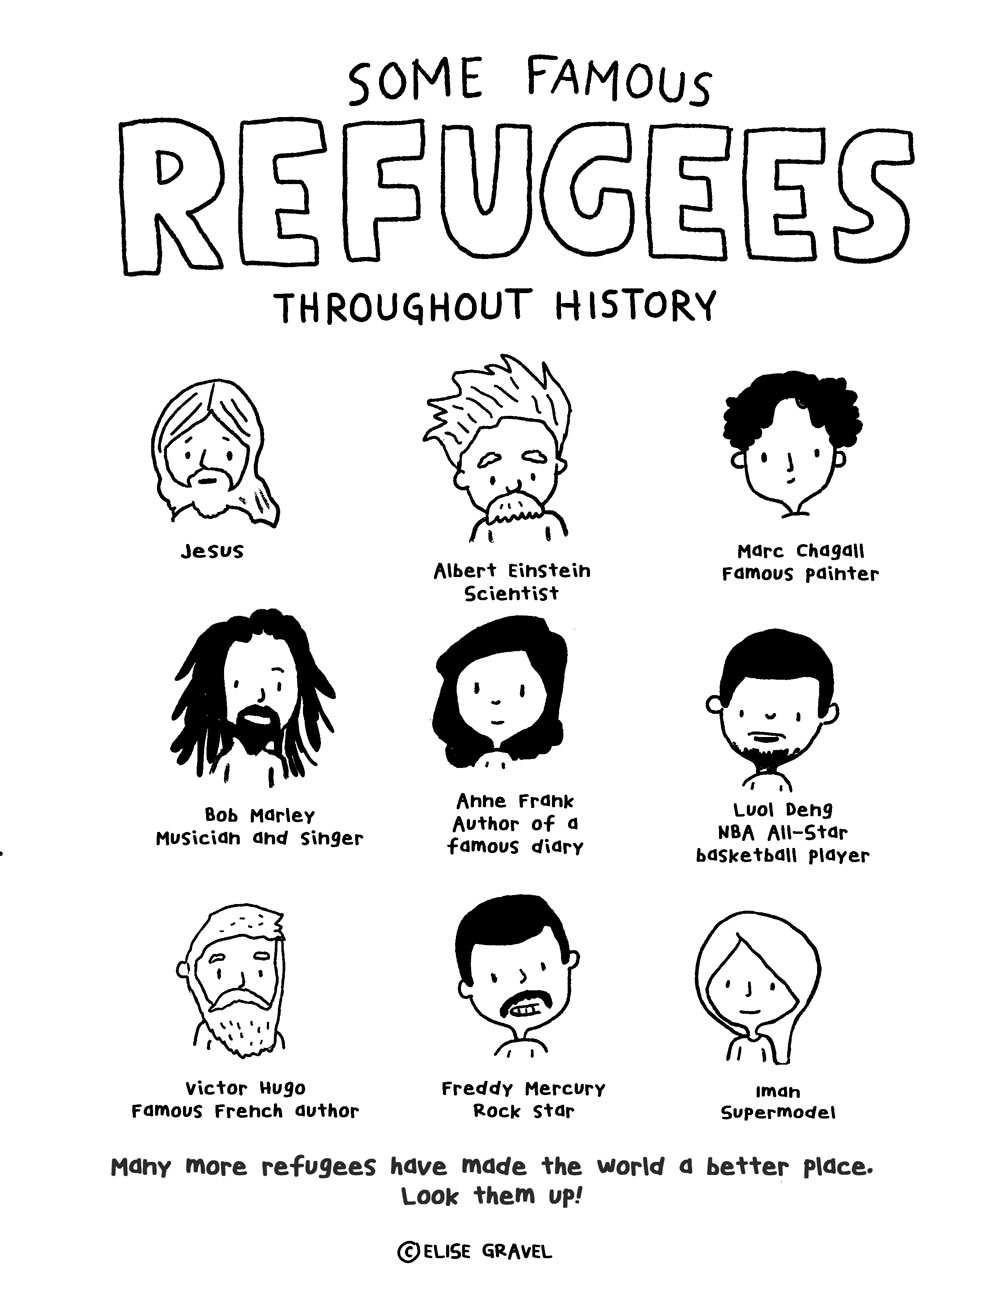 Some famous refugees